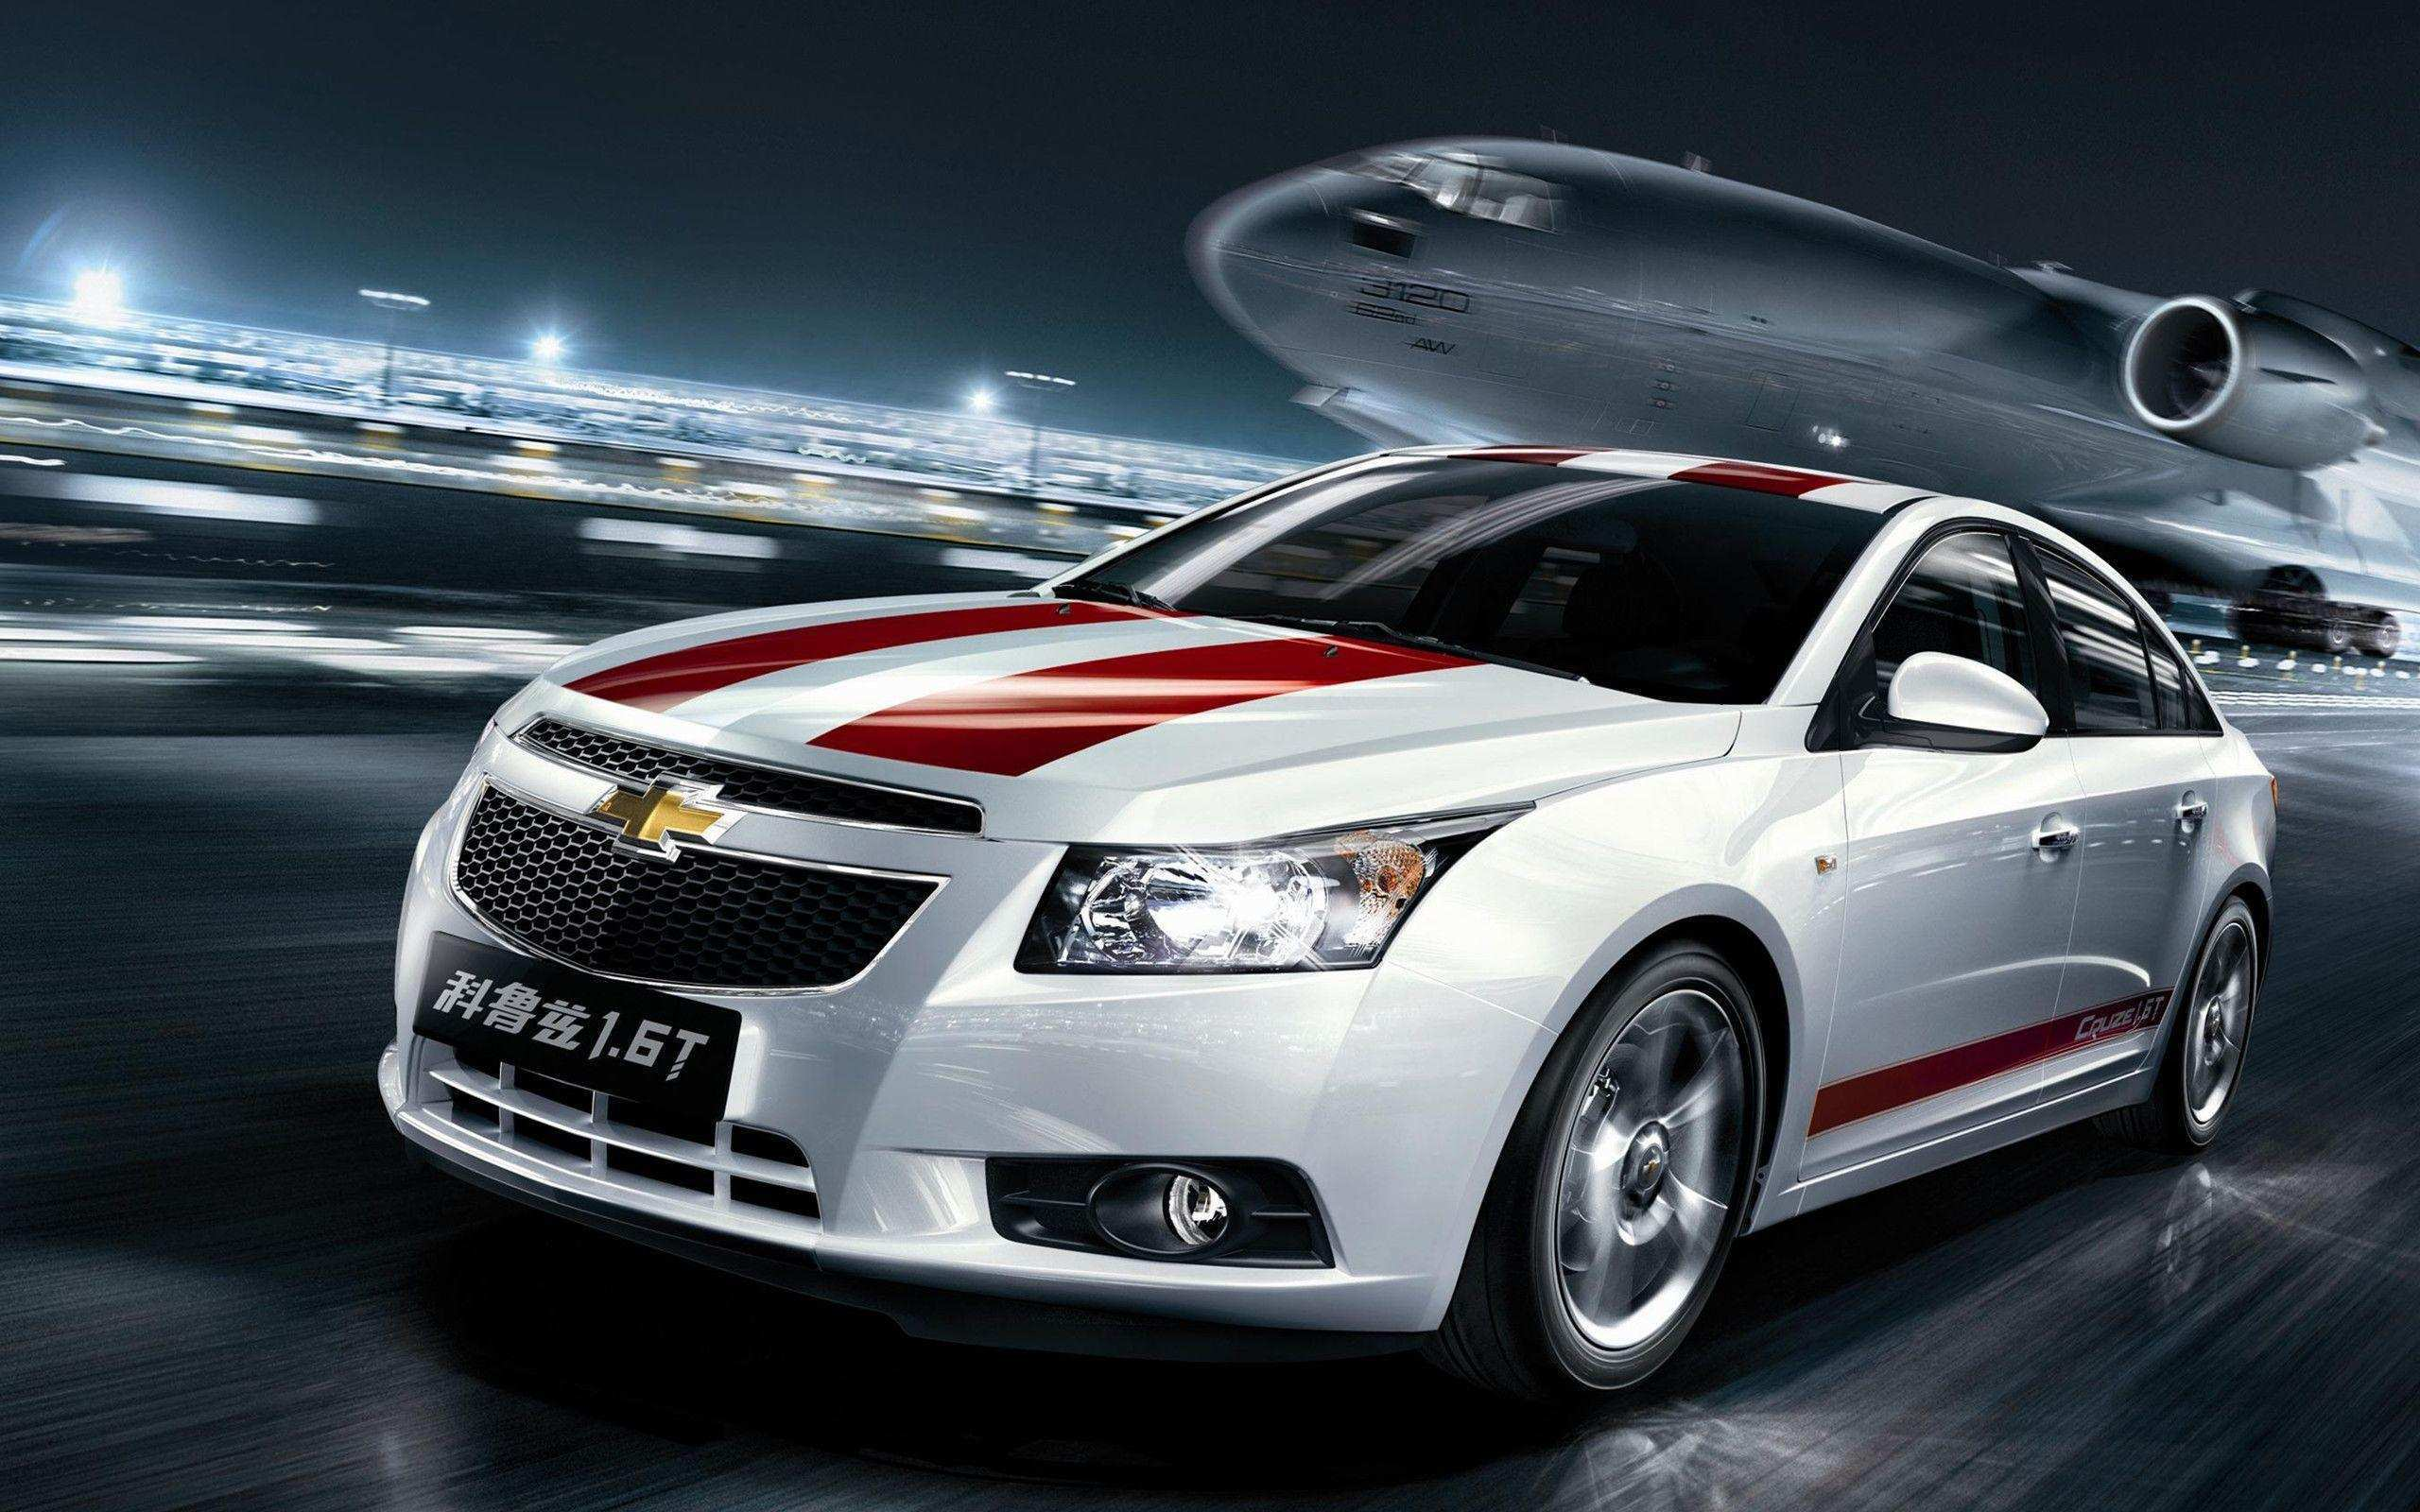 73 All New Chevy Cruze Wallpapers Speed Test by Chevy Cruze Wallpapers